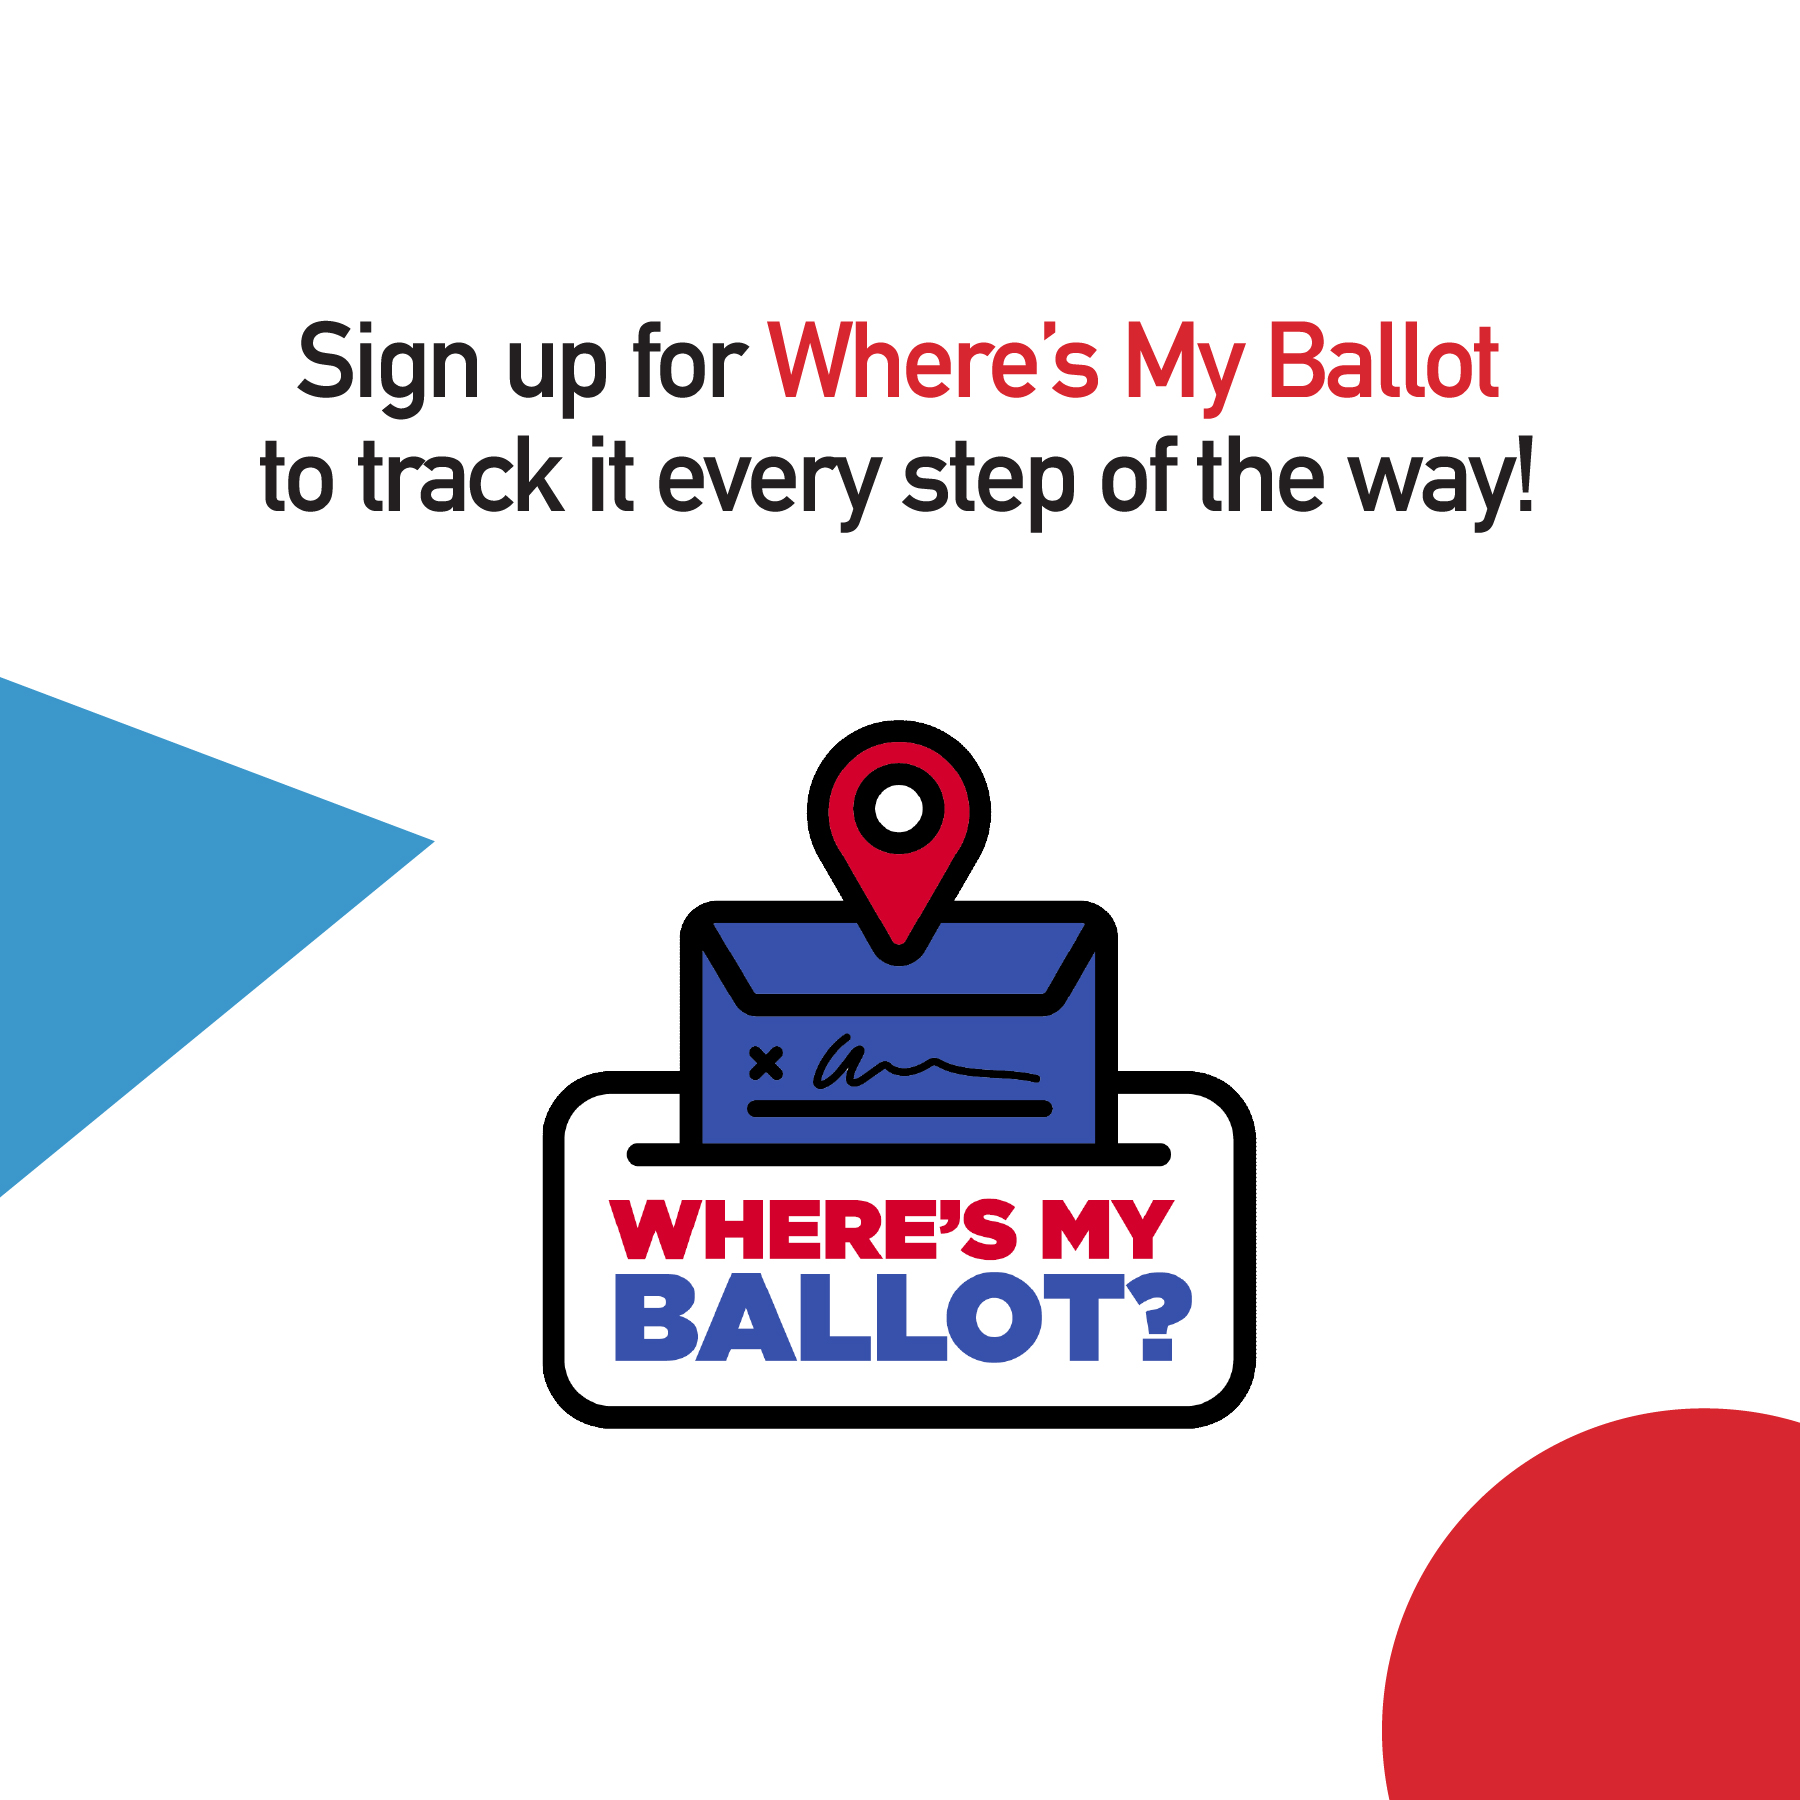 Where's My Ballot graphic